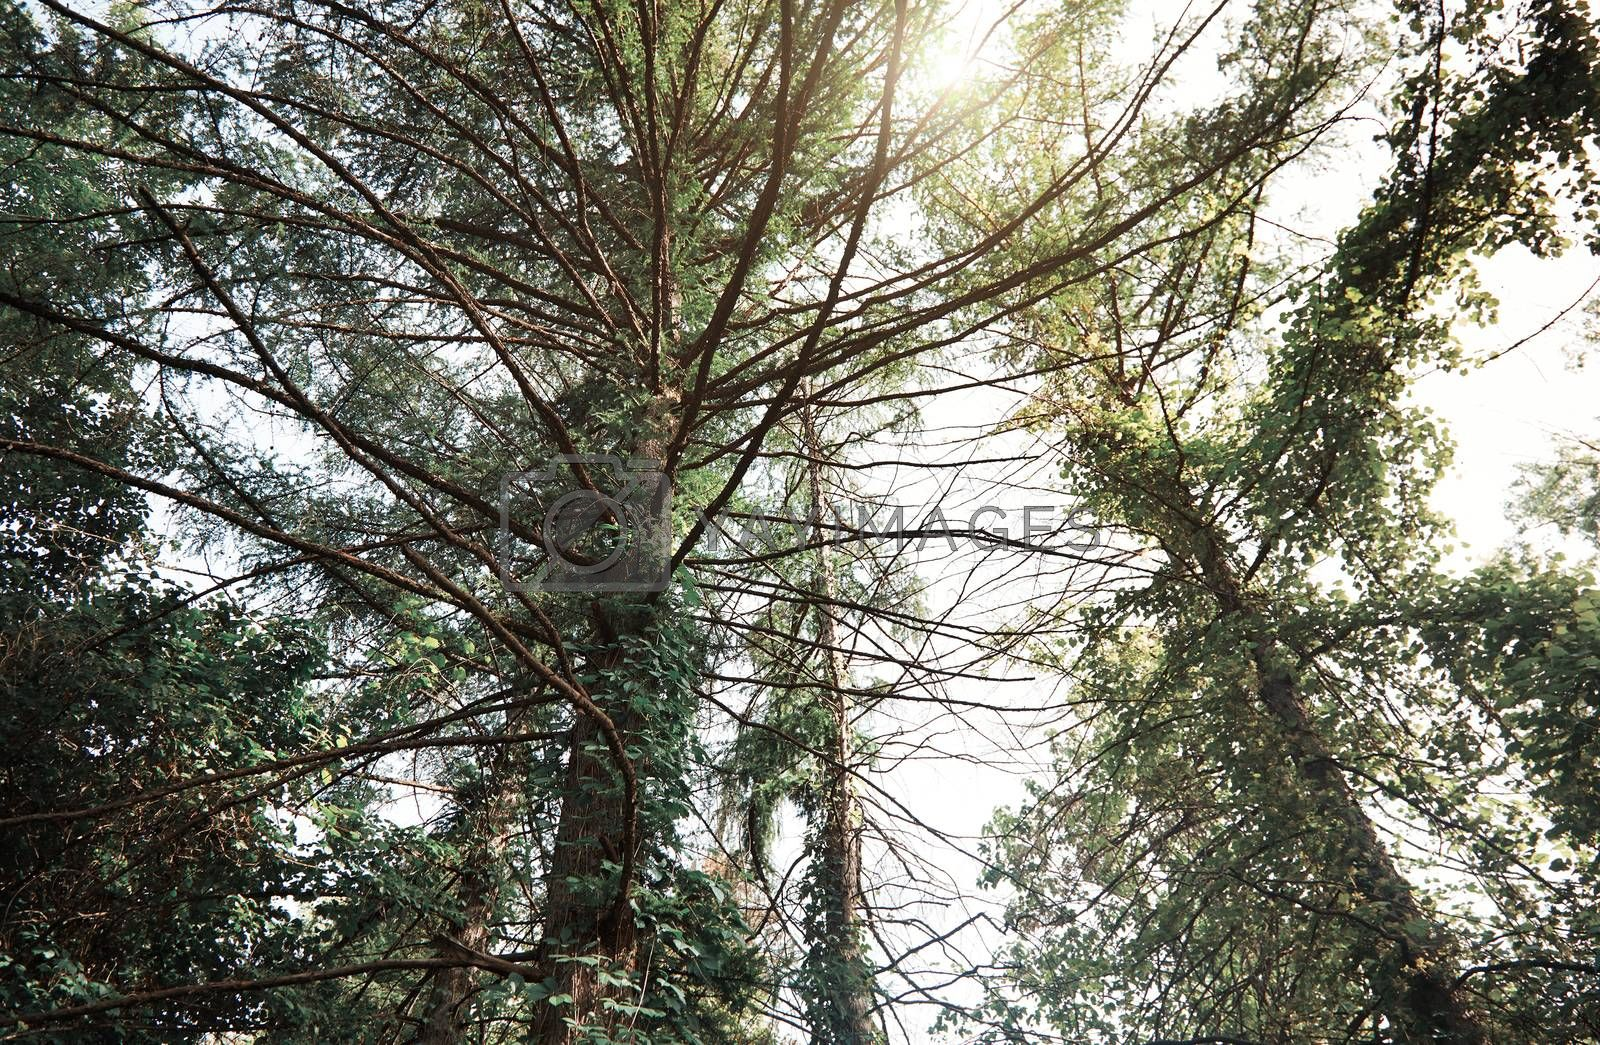 Pines in a wild forest. Horizontal photo